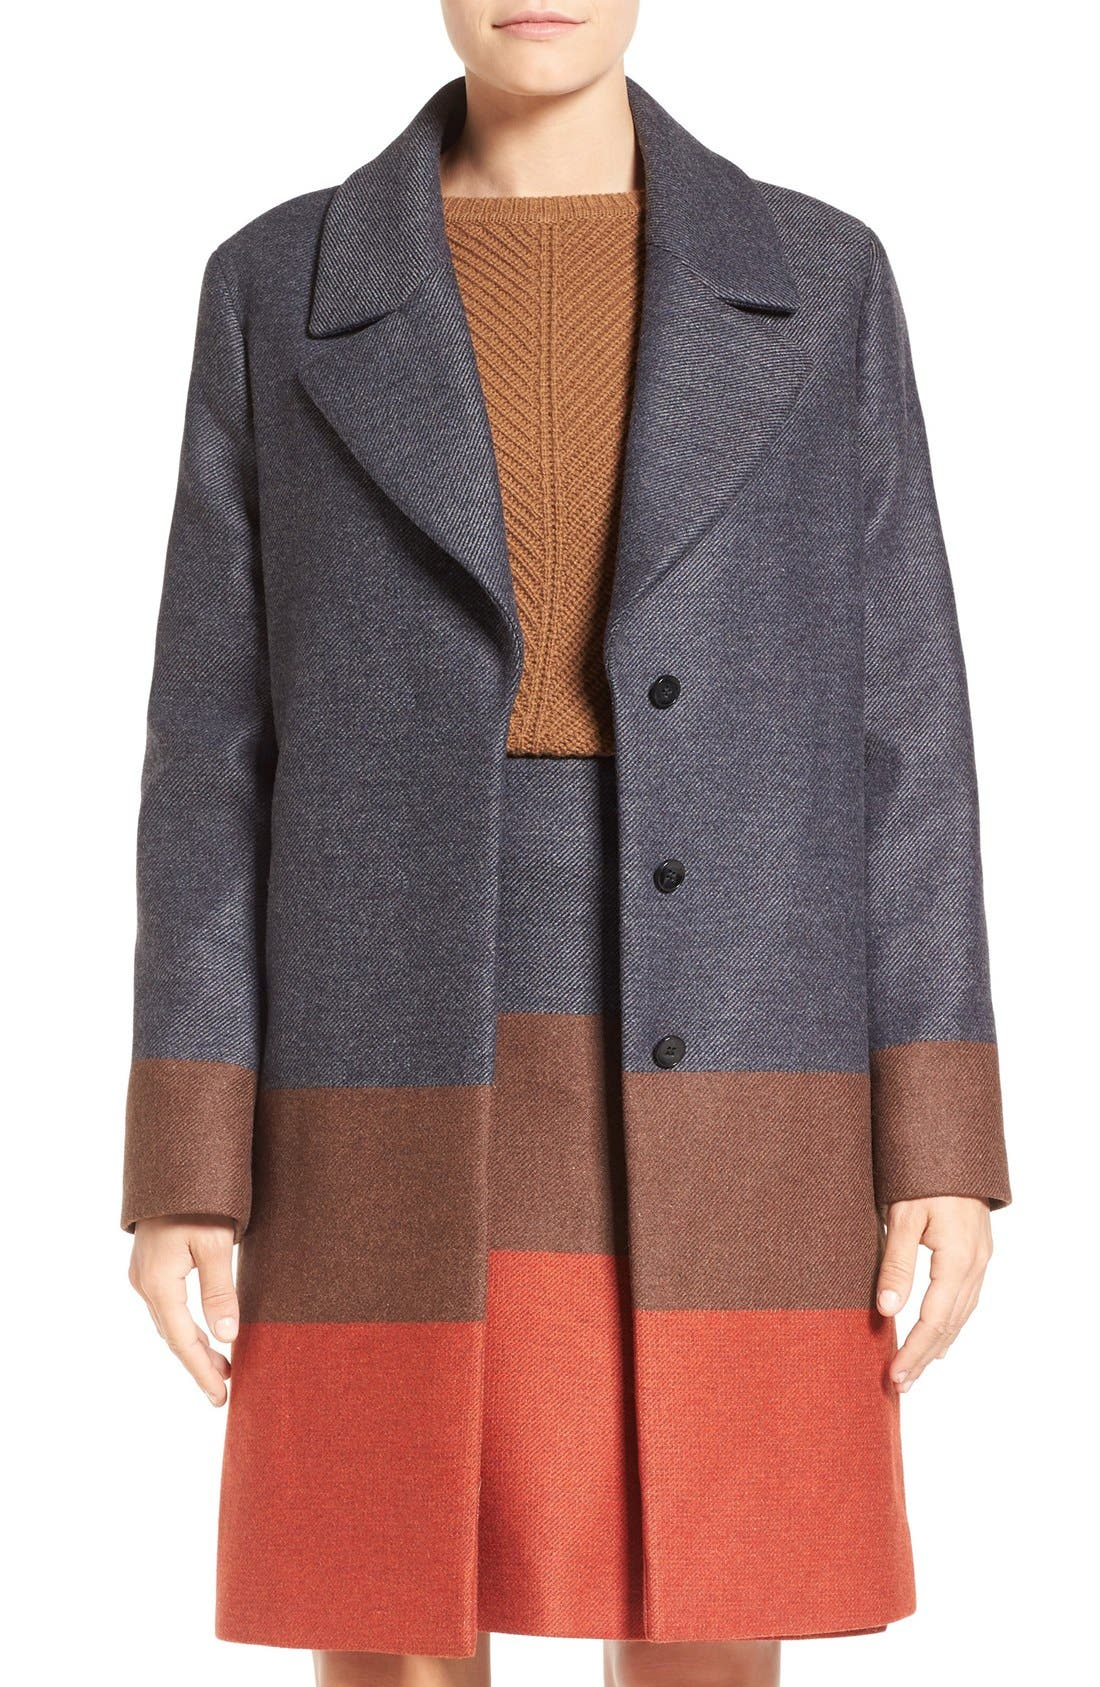 Alternate Image 1 Selected - BOSS 'Colora' Long Wool Blend Jacket